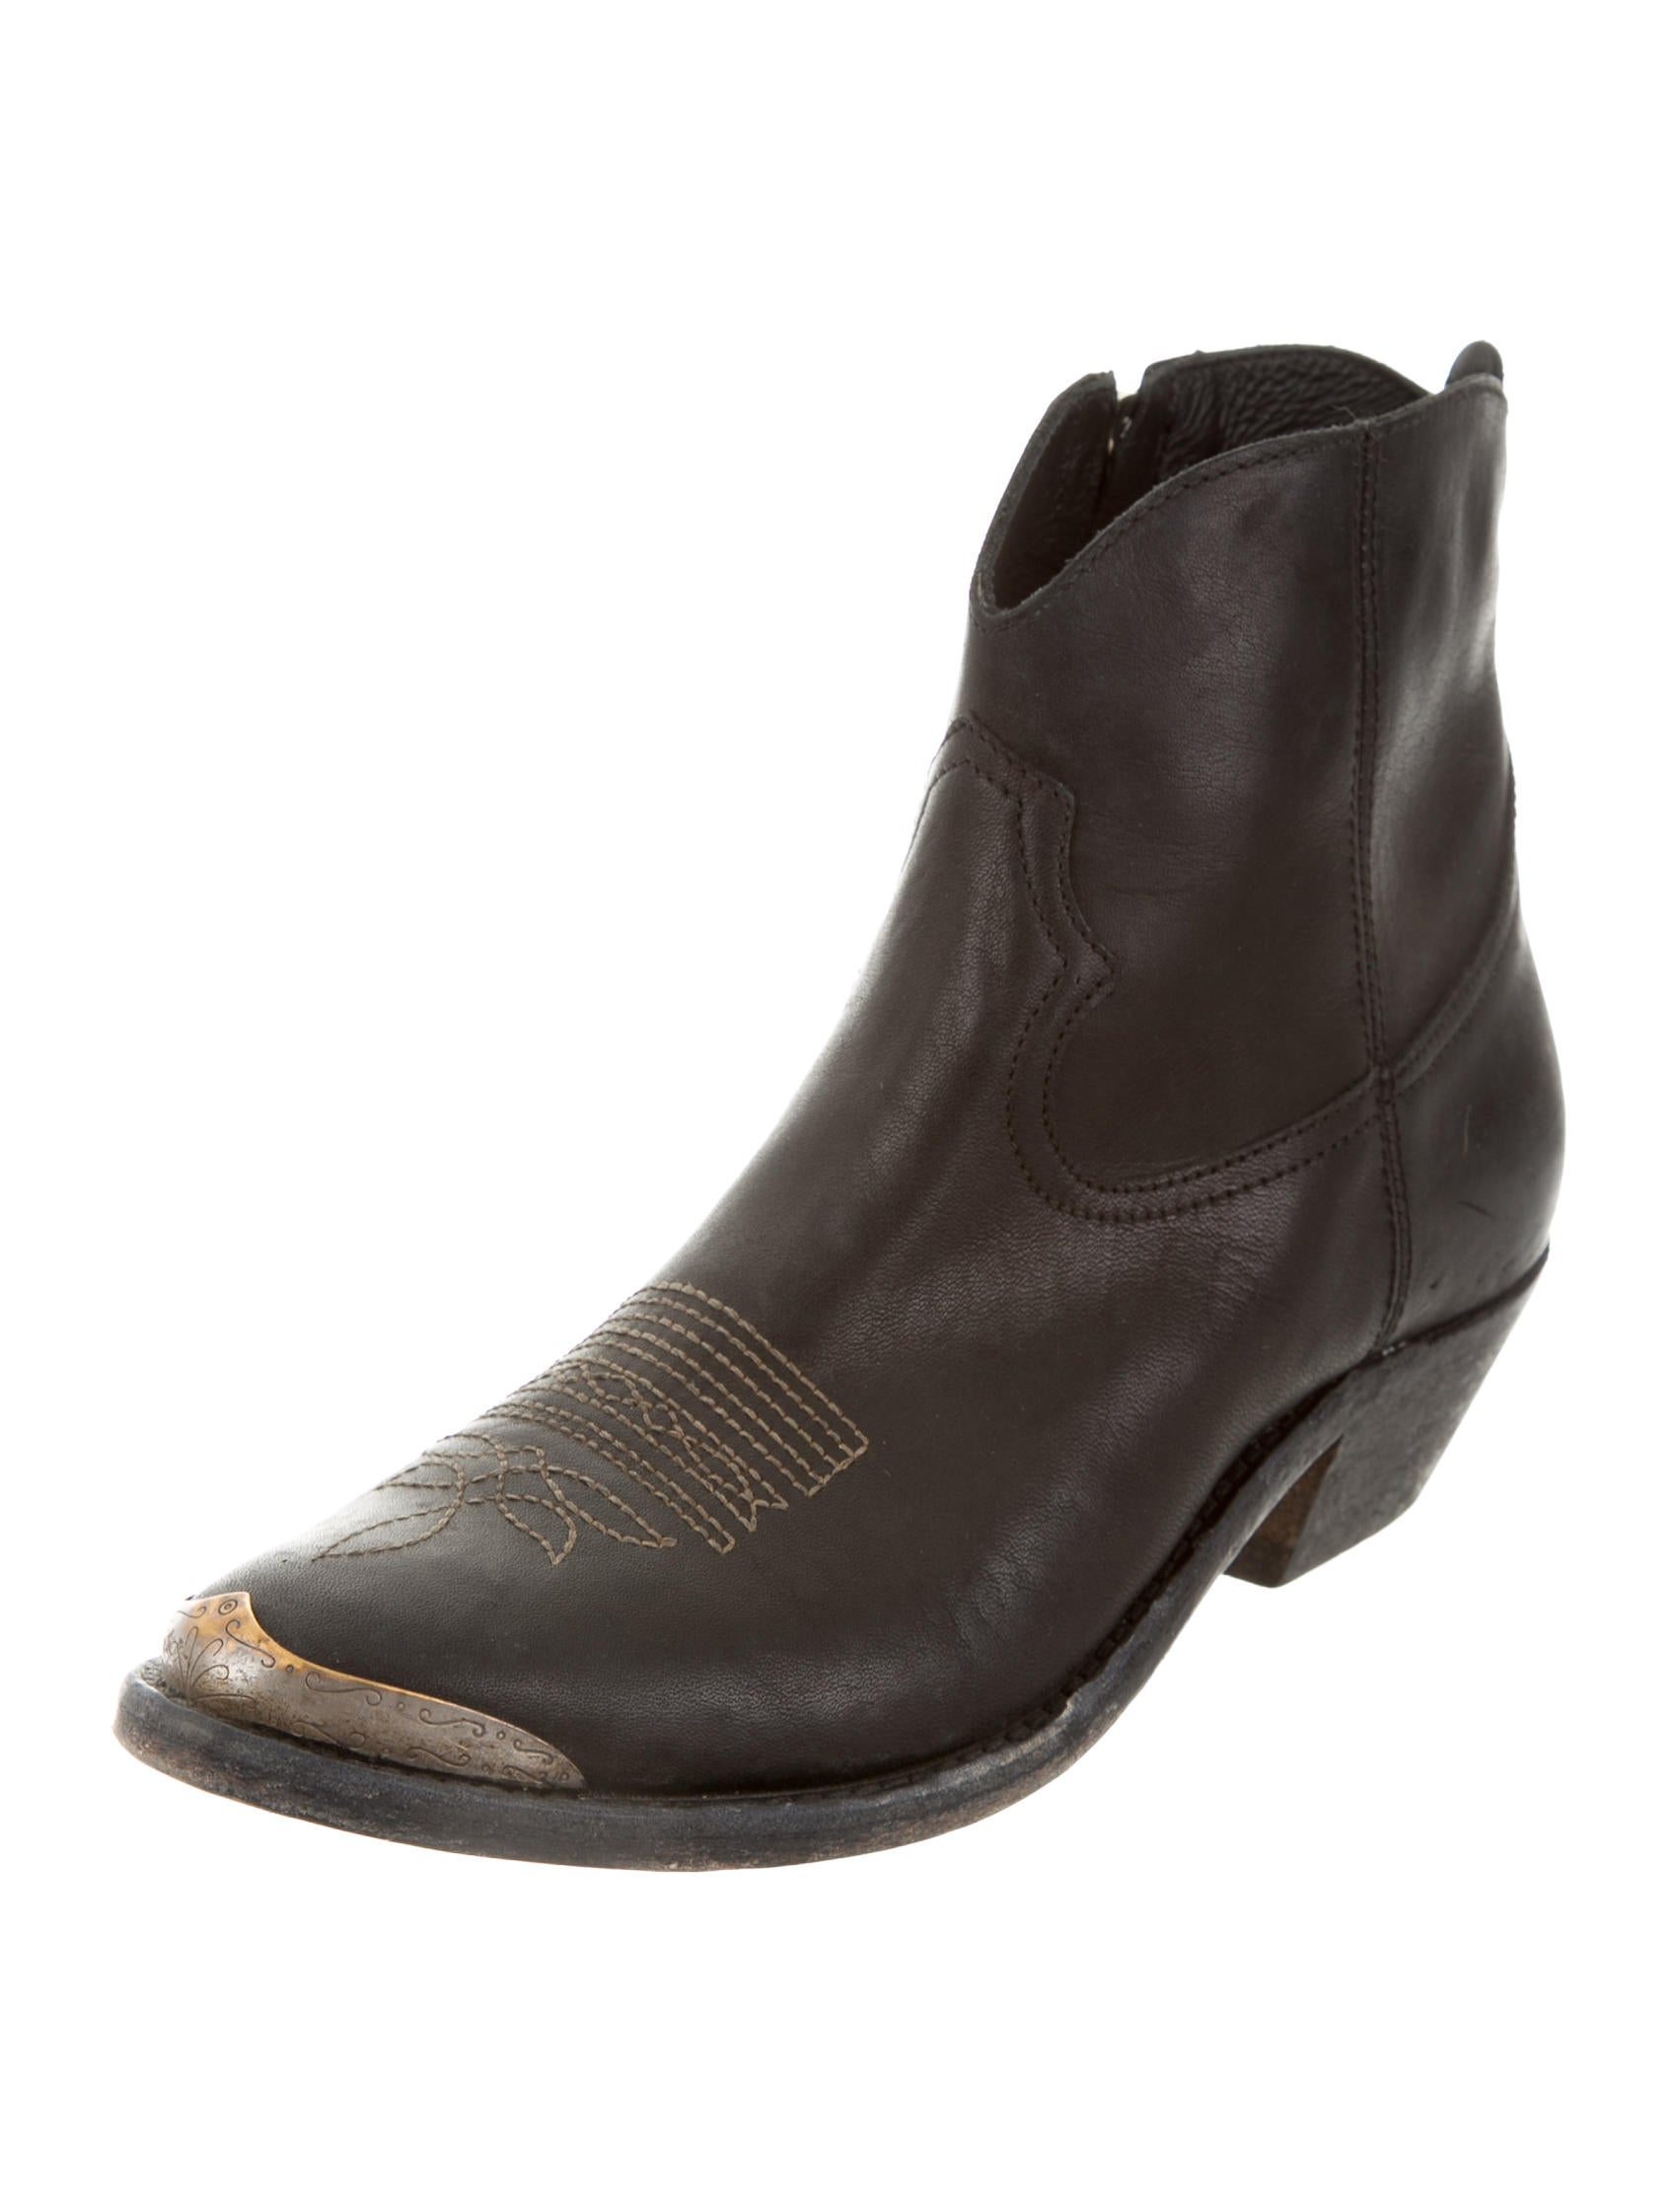 golden goose leather cowboy ankle boots shoes wg522469